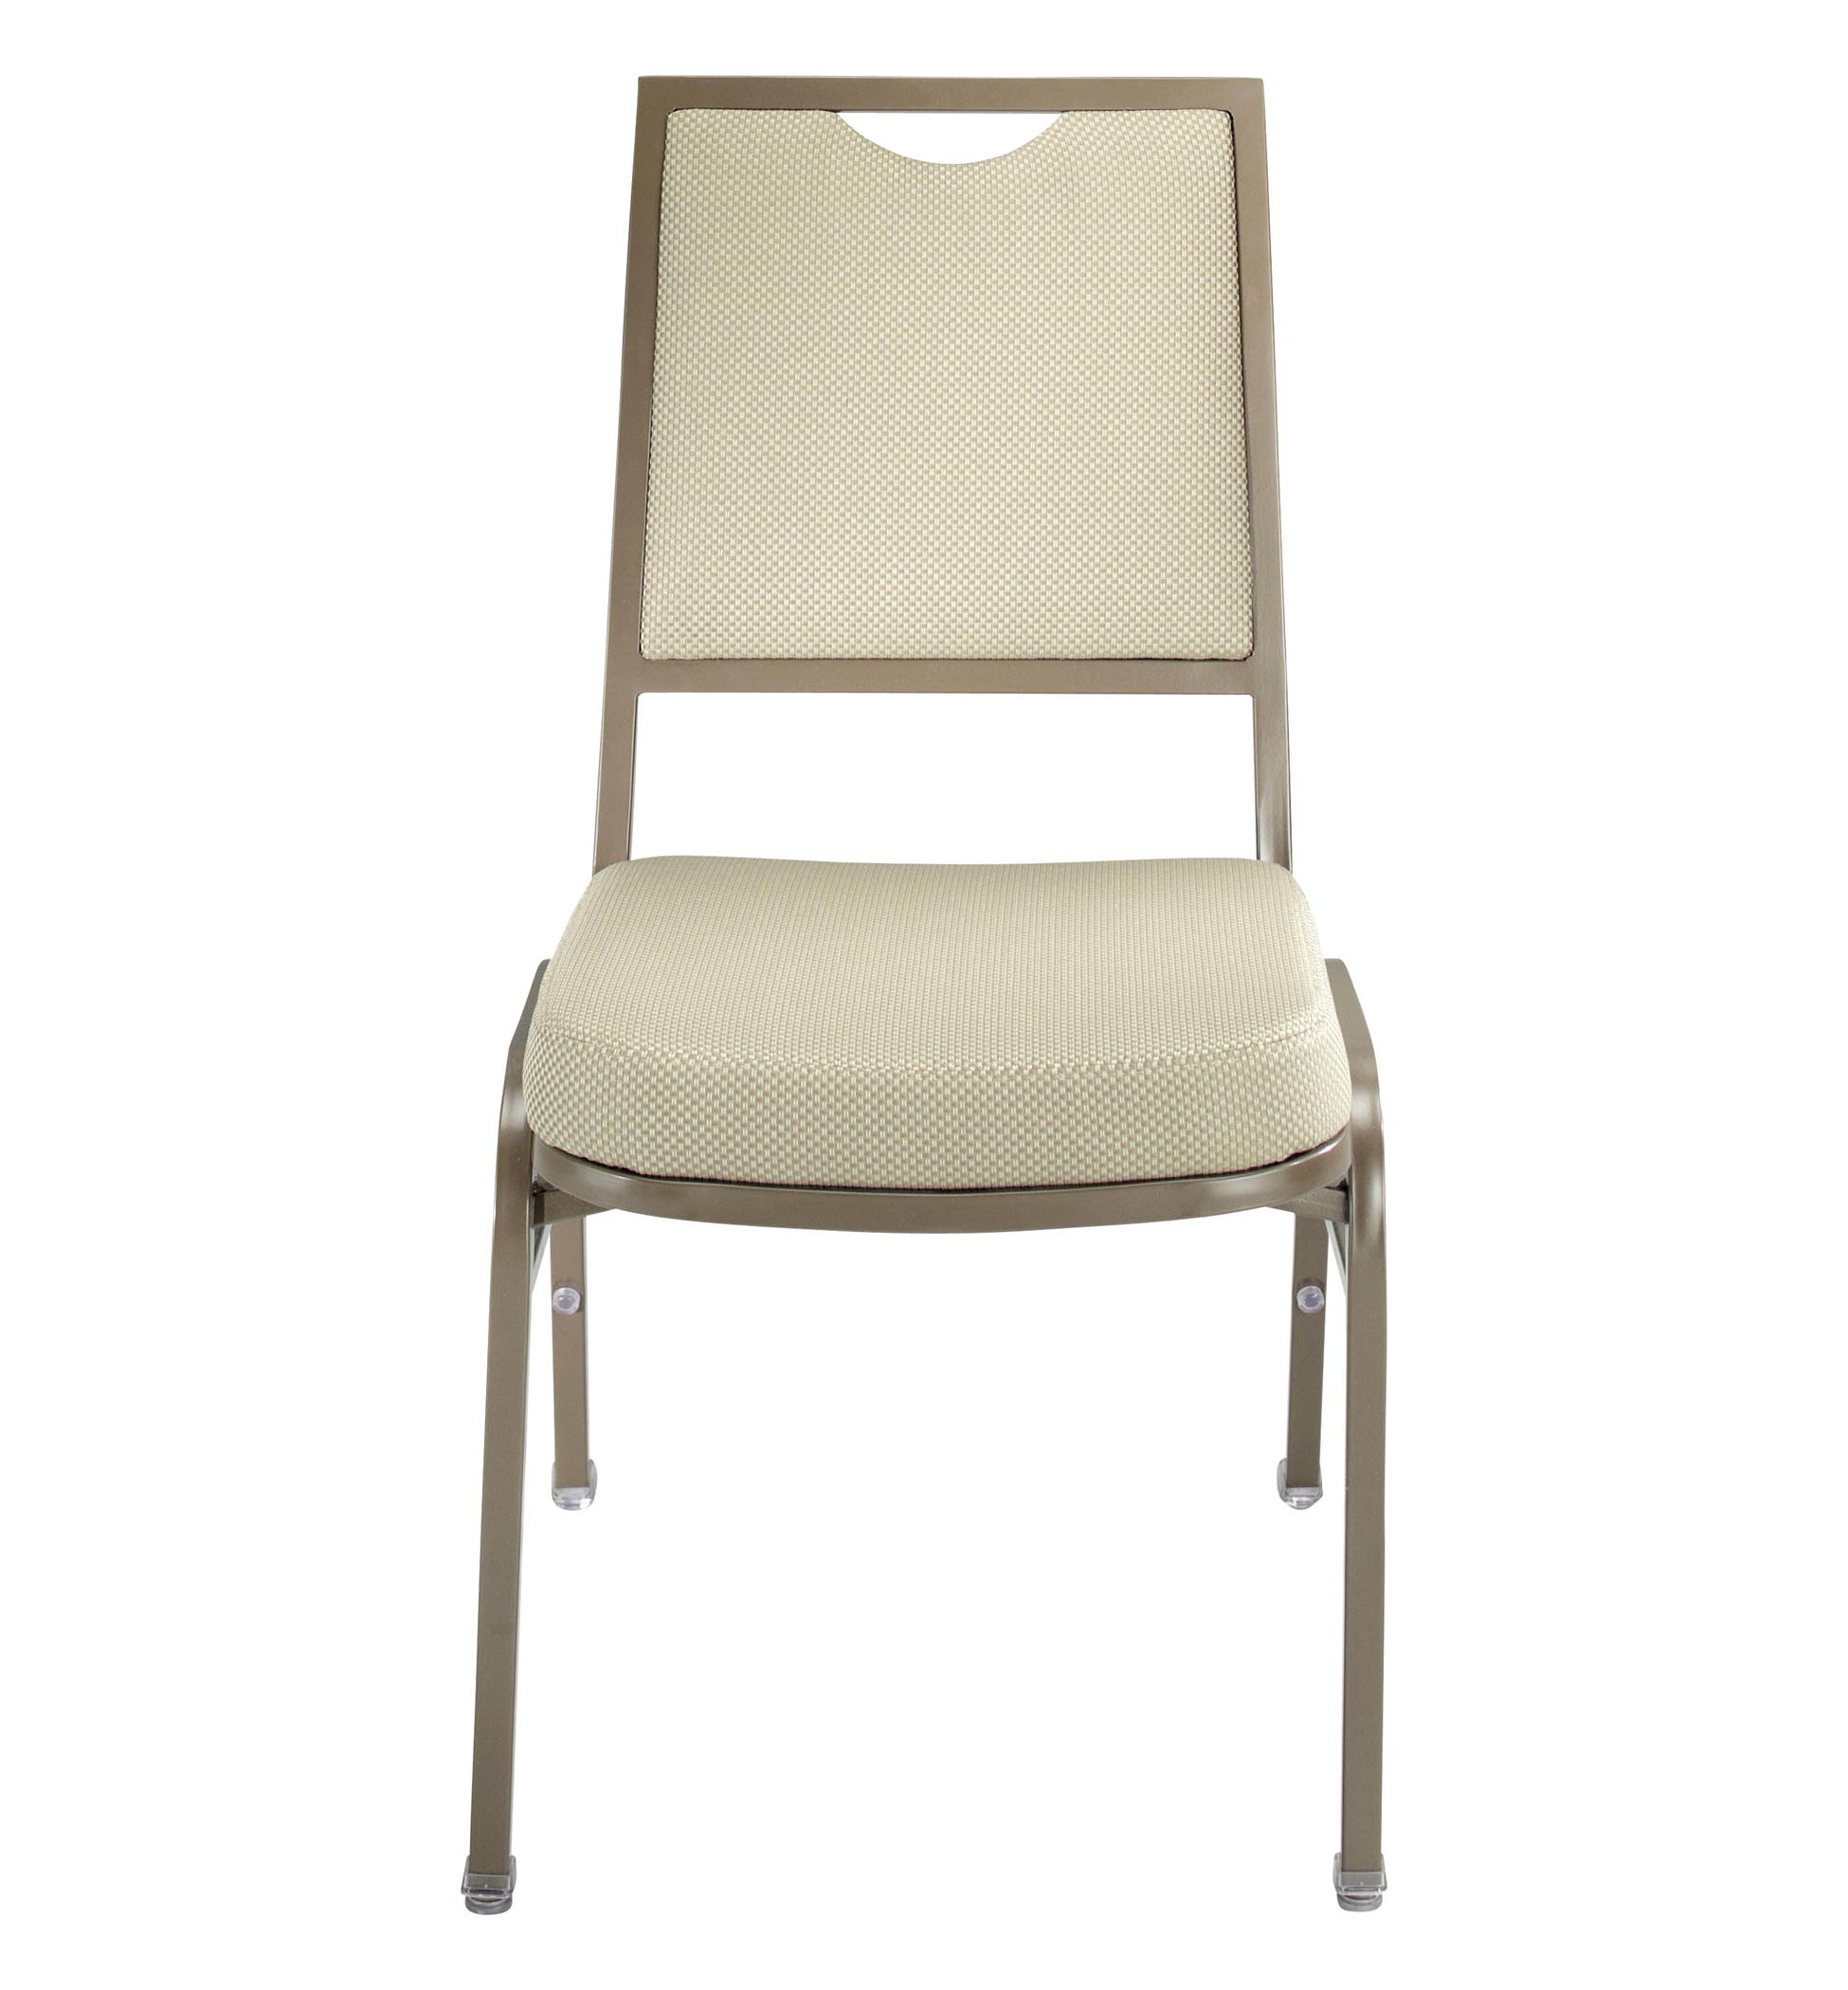 shelby williams chairs swing chair nilai 3 5253p steel banquet